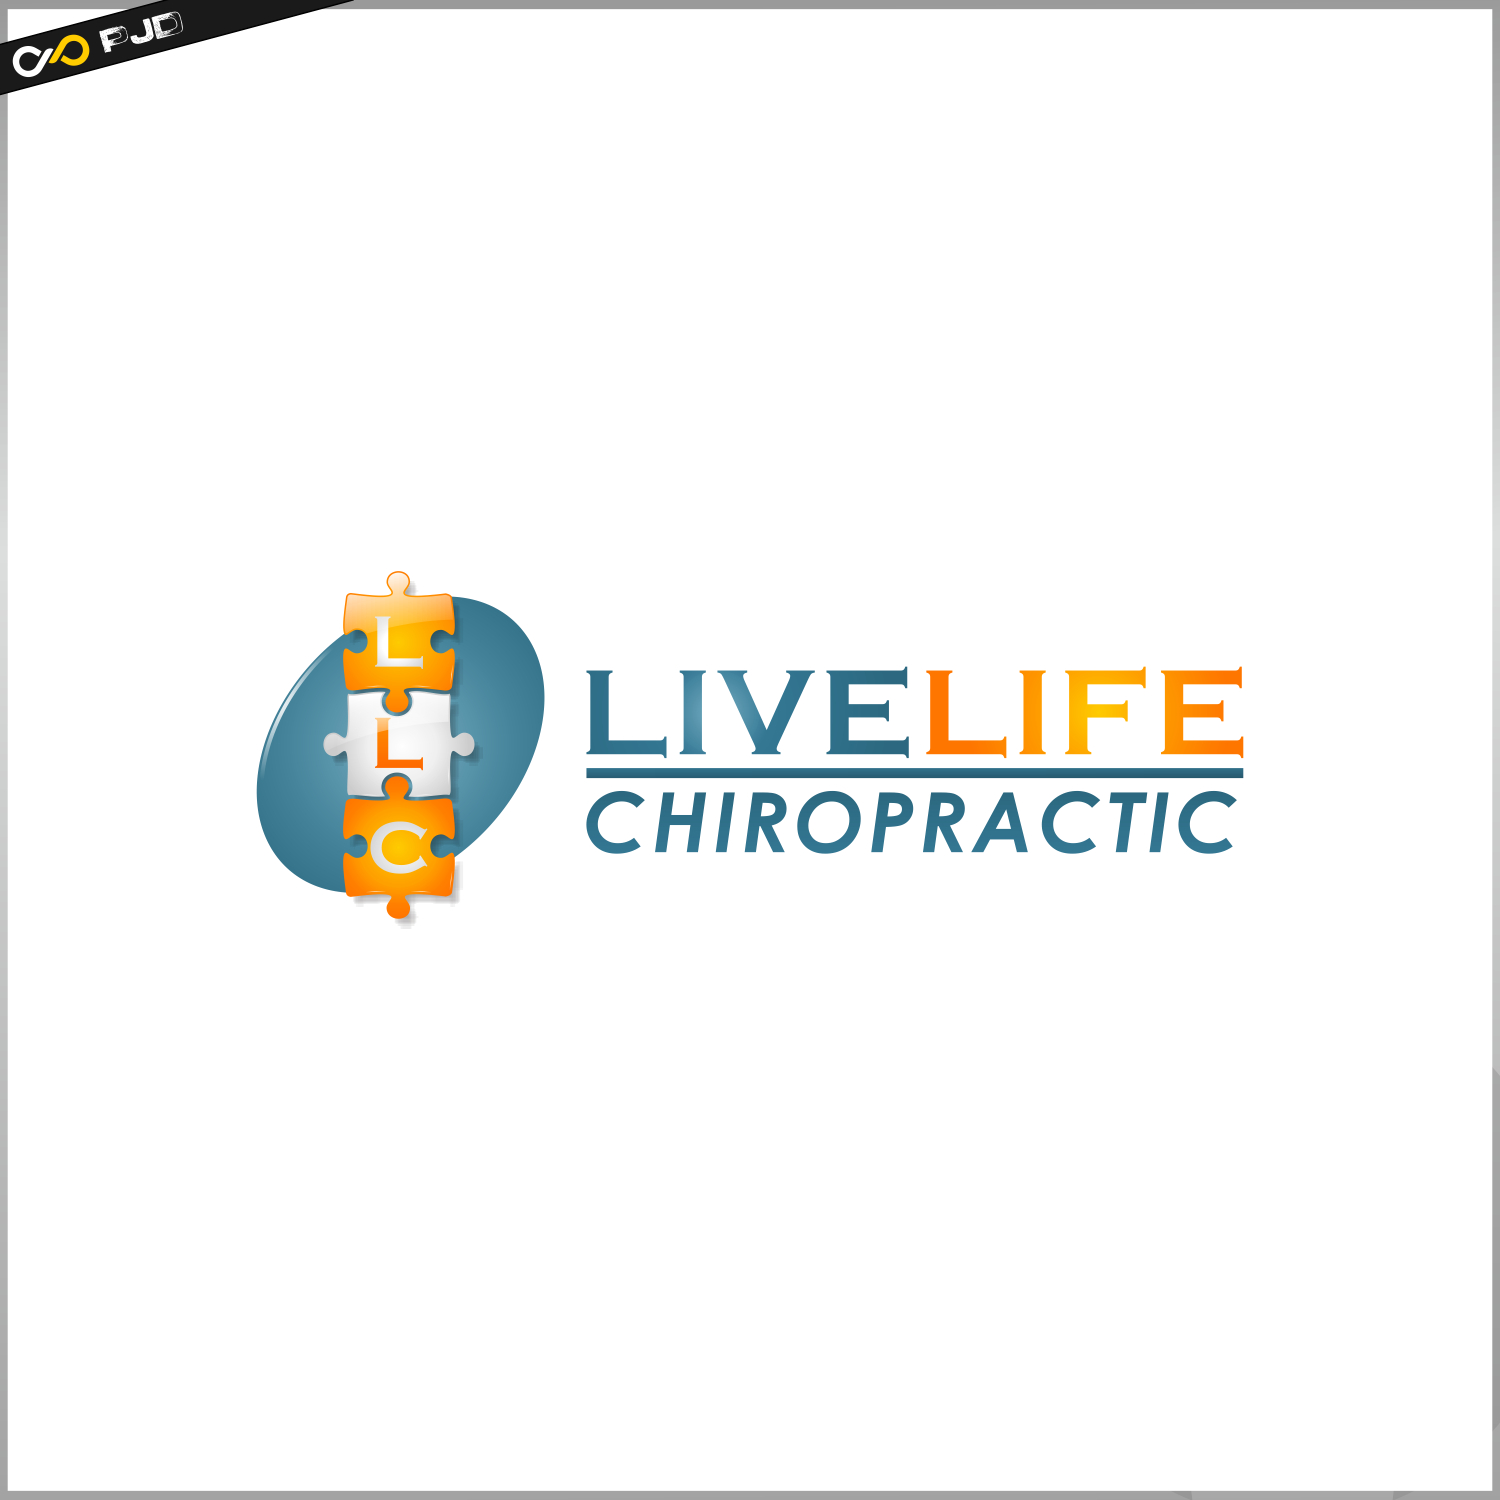 Logo Design by PJD - Entry No. 65 in the Logo Design Contest Captivating Logo Design for LiveLife Chiropractic.